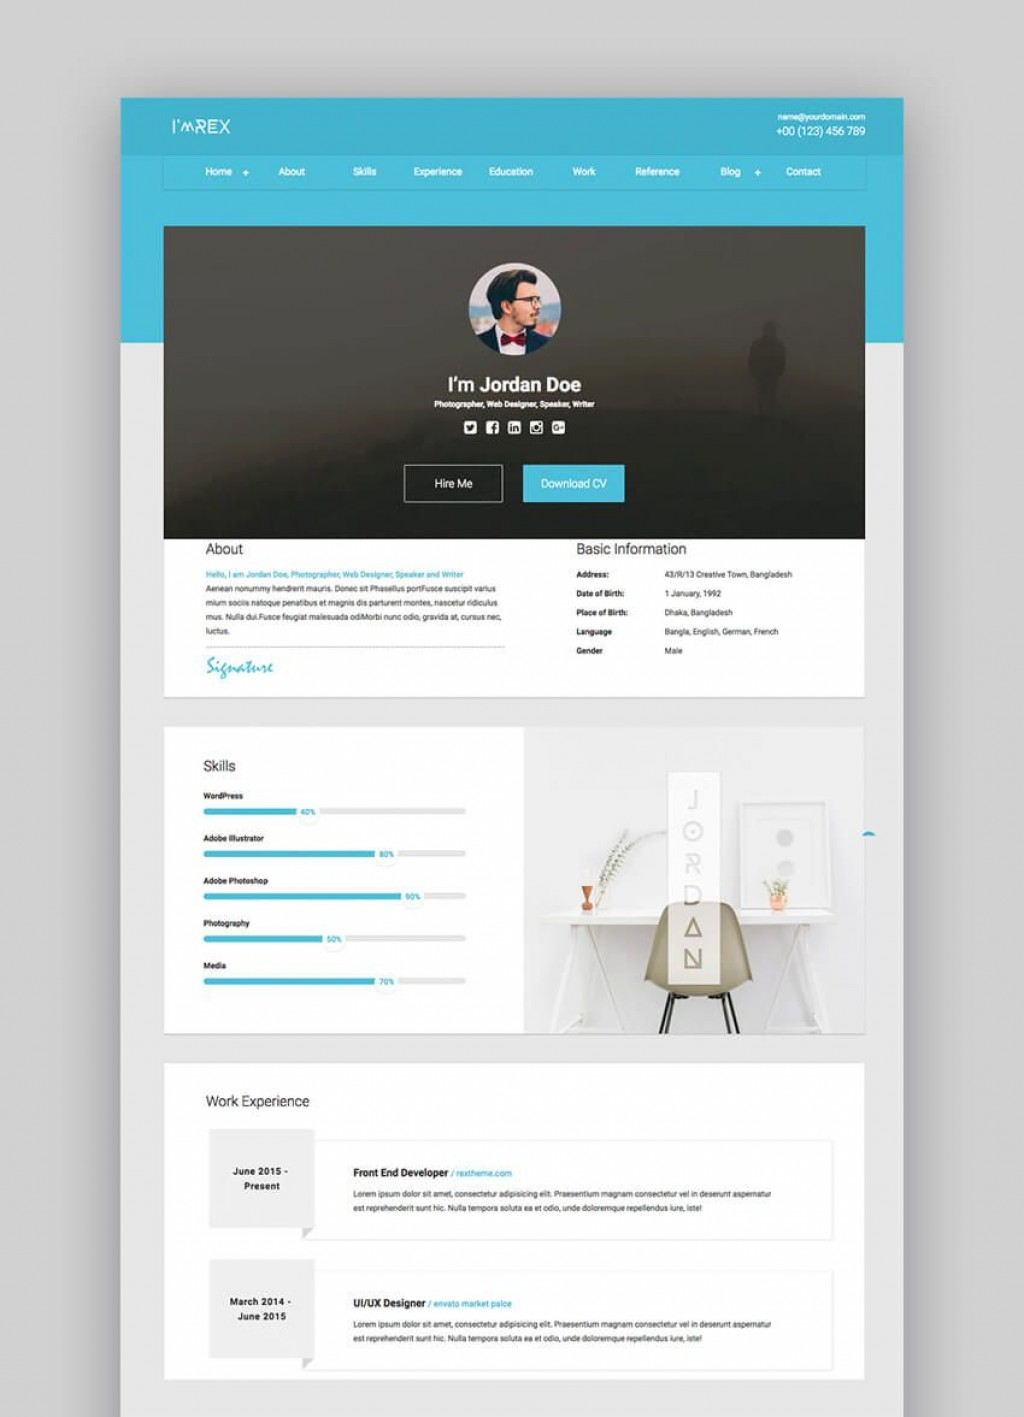 003 Archaicawful Personal Portfolio Template Free Download Image  Psd PowerpointLarge